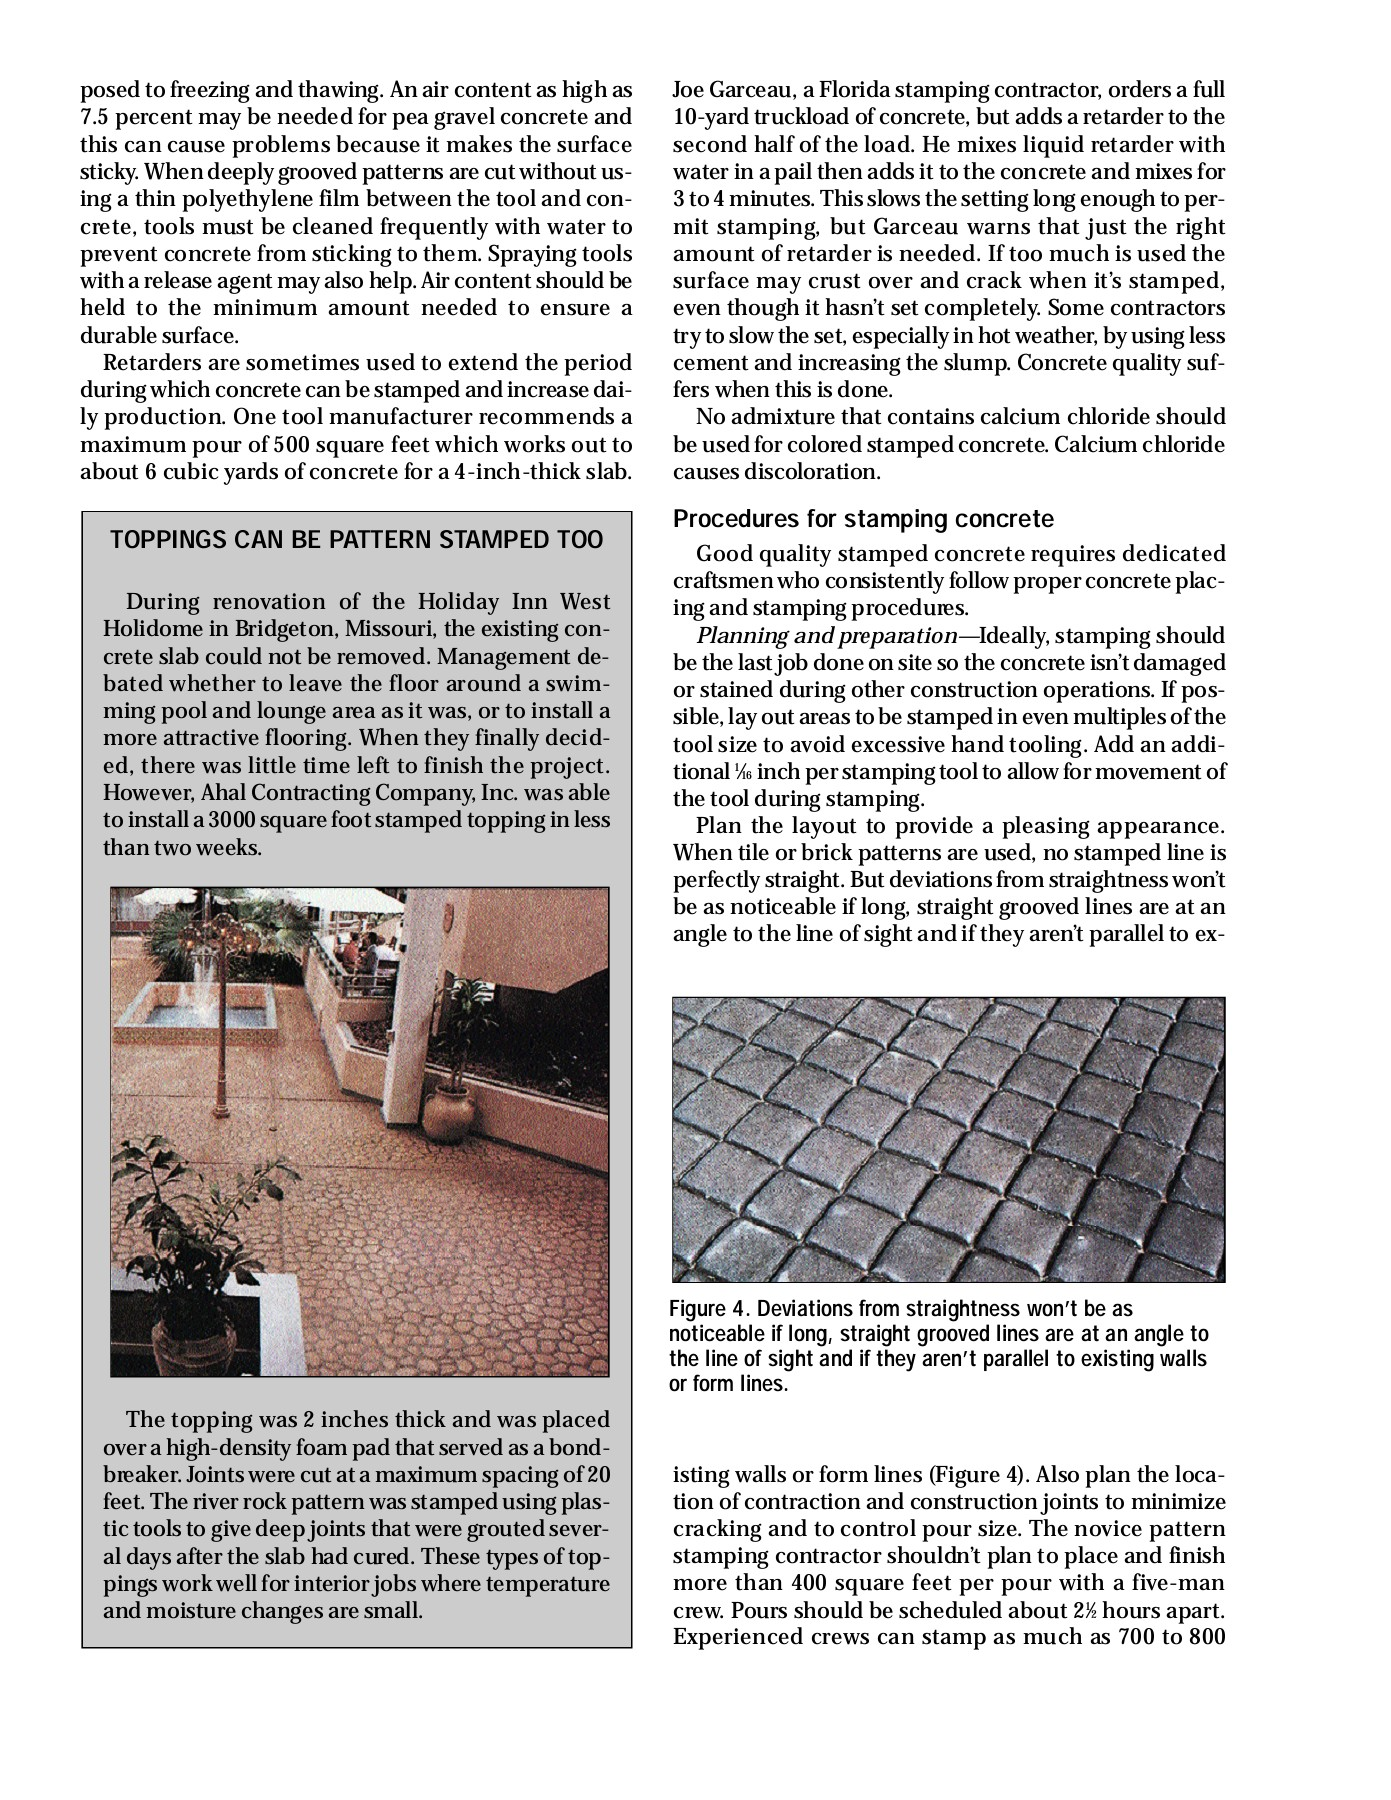 Stamped concrete - Concrete and Construction Pages 1 - 6 - Text